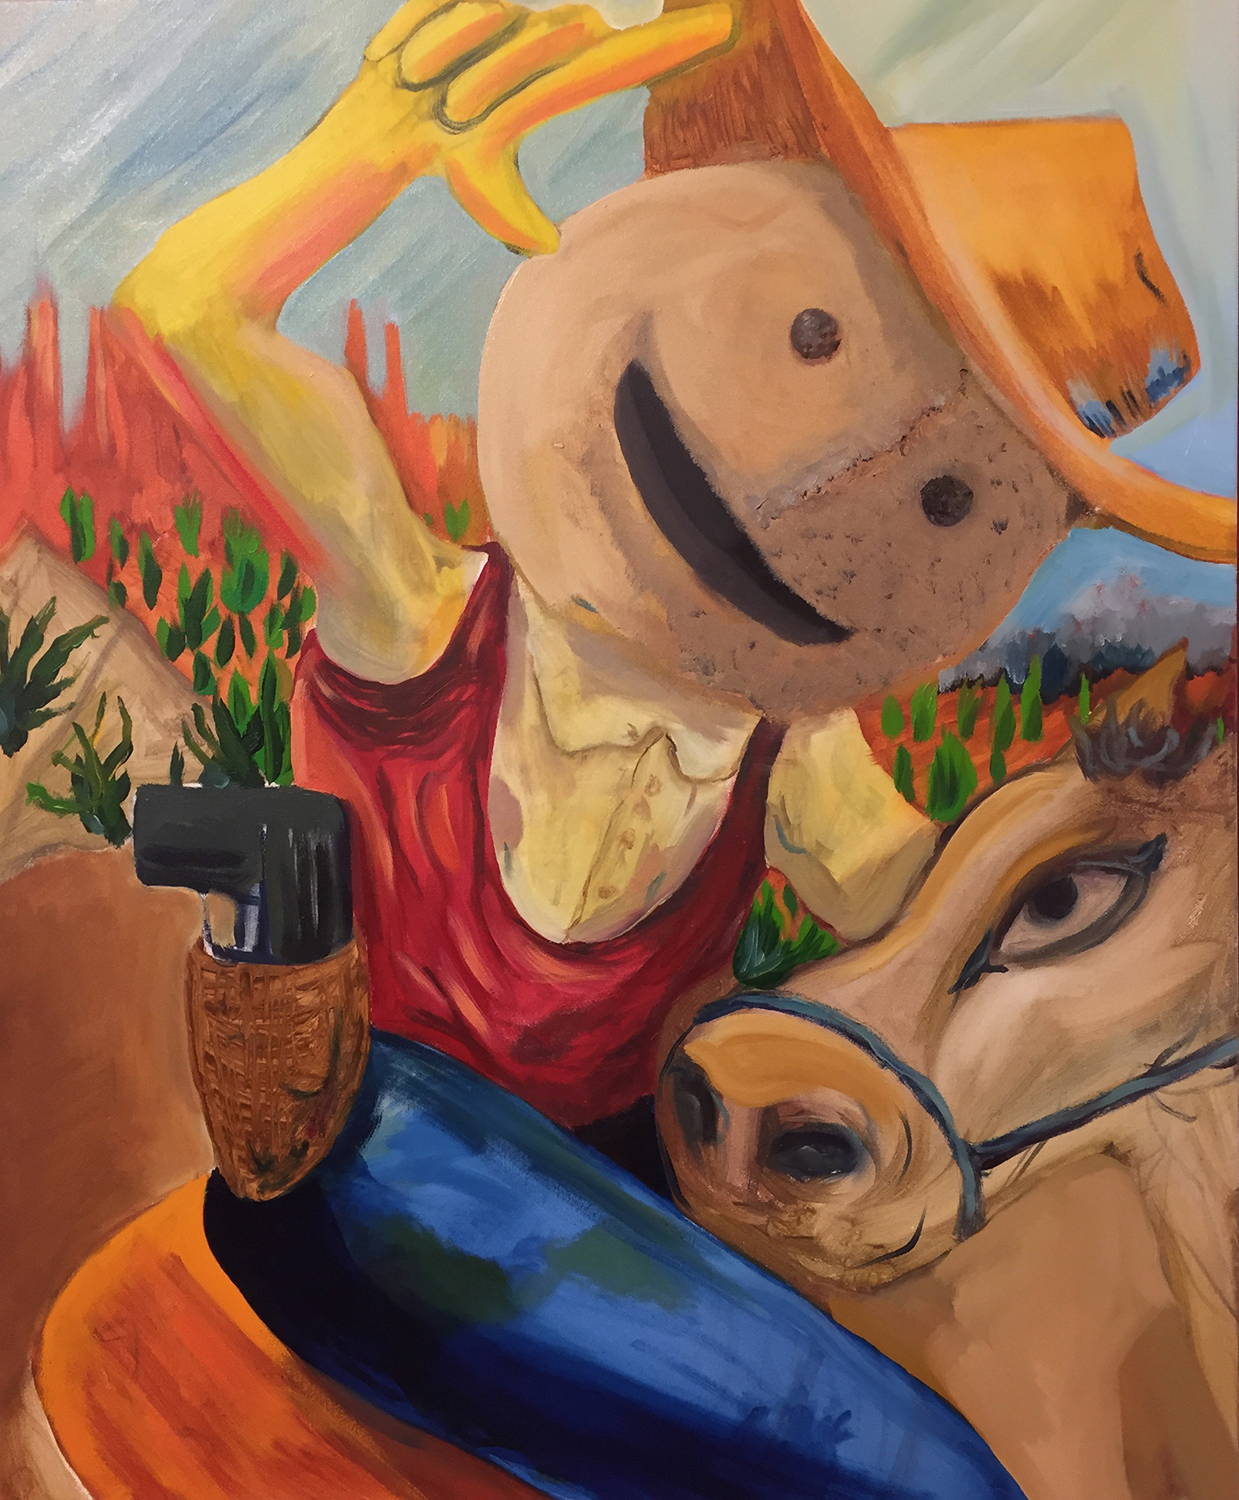 Howdy, 2017, oil on canvas, 18 x 24 inches.